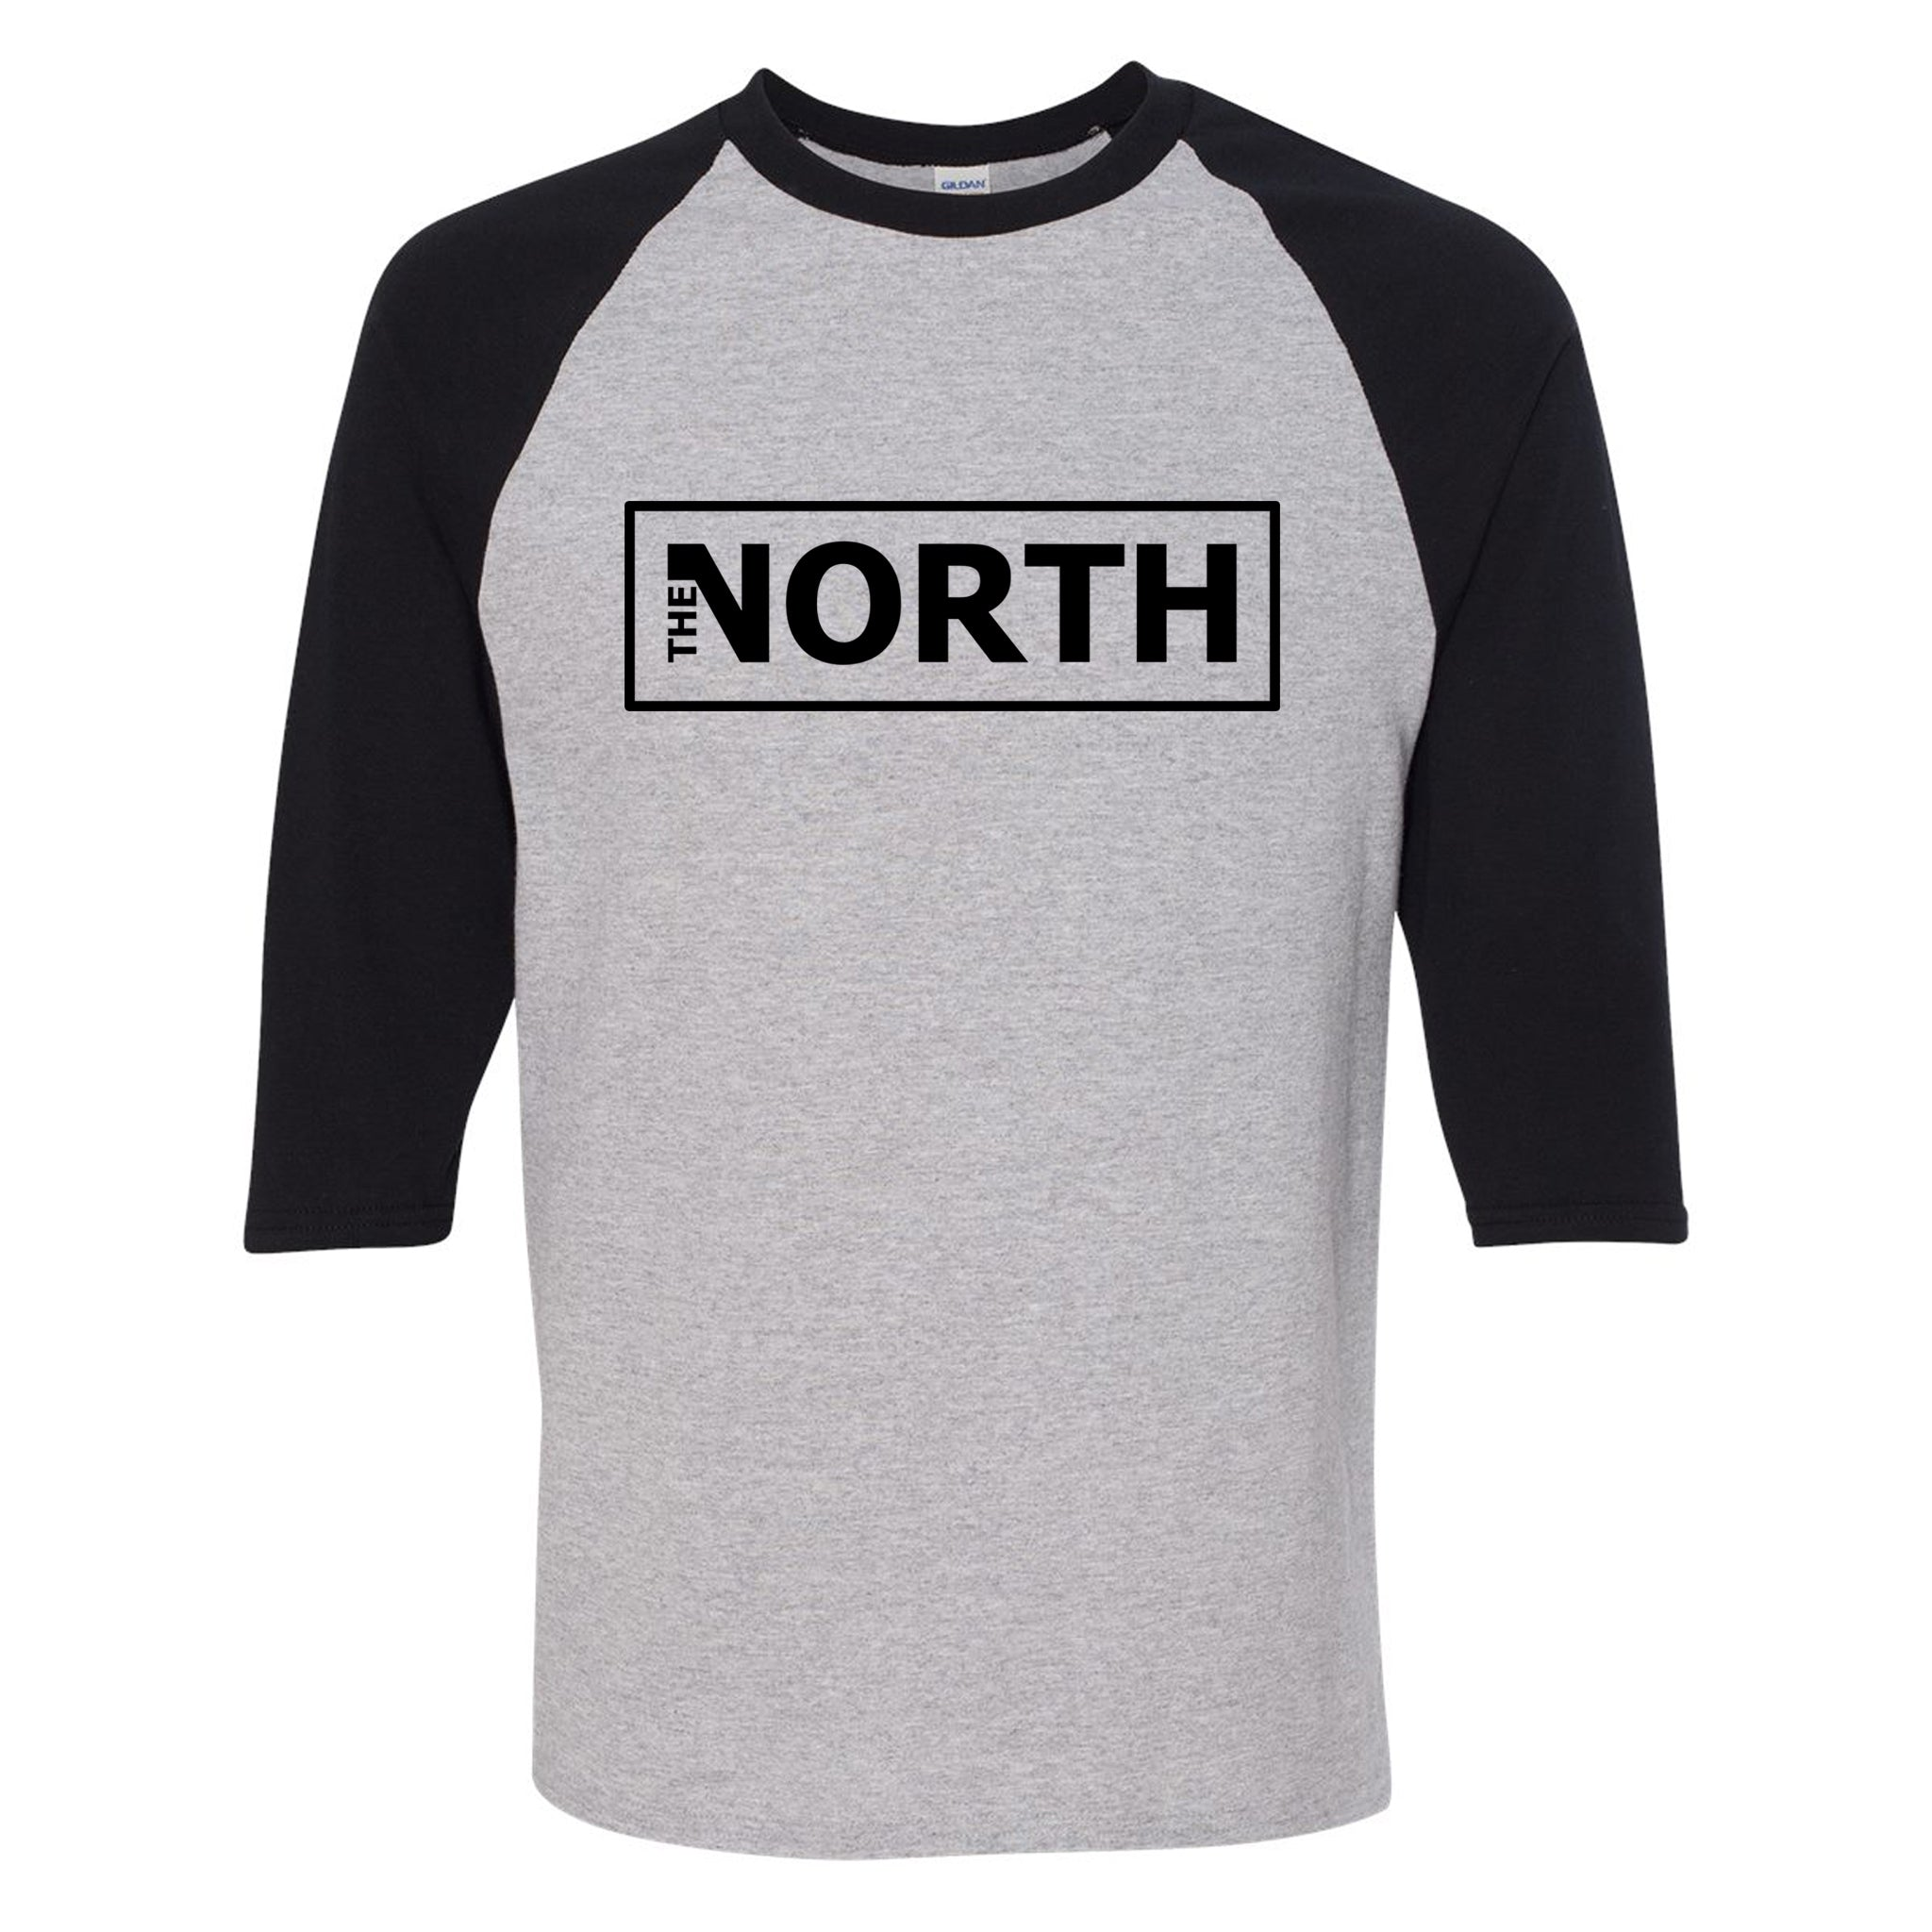 The North - 3/4 Sleeve Raglan Logo T-Shirt